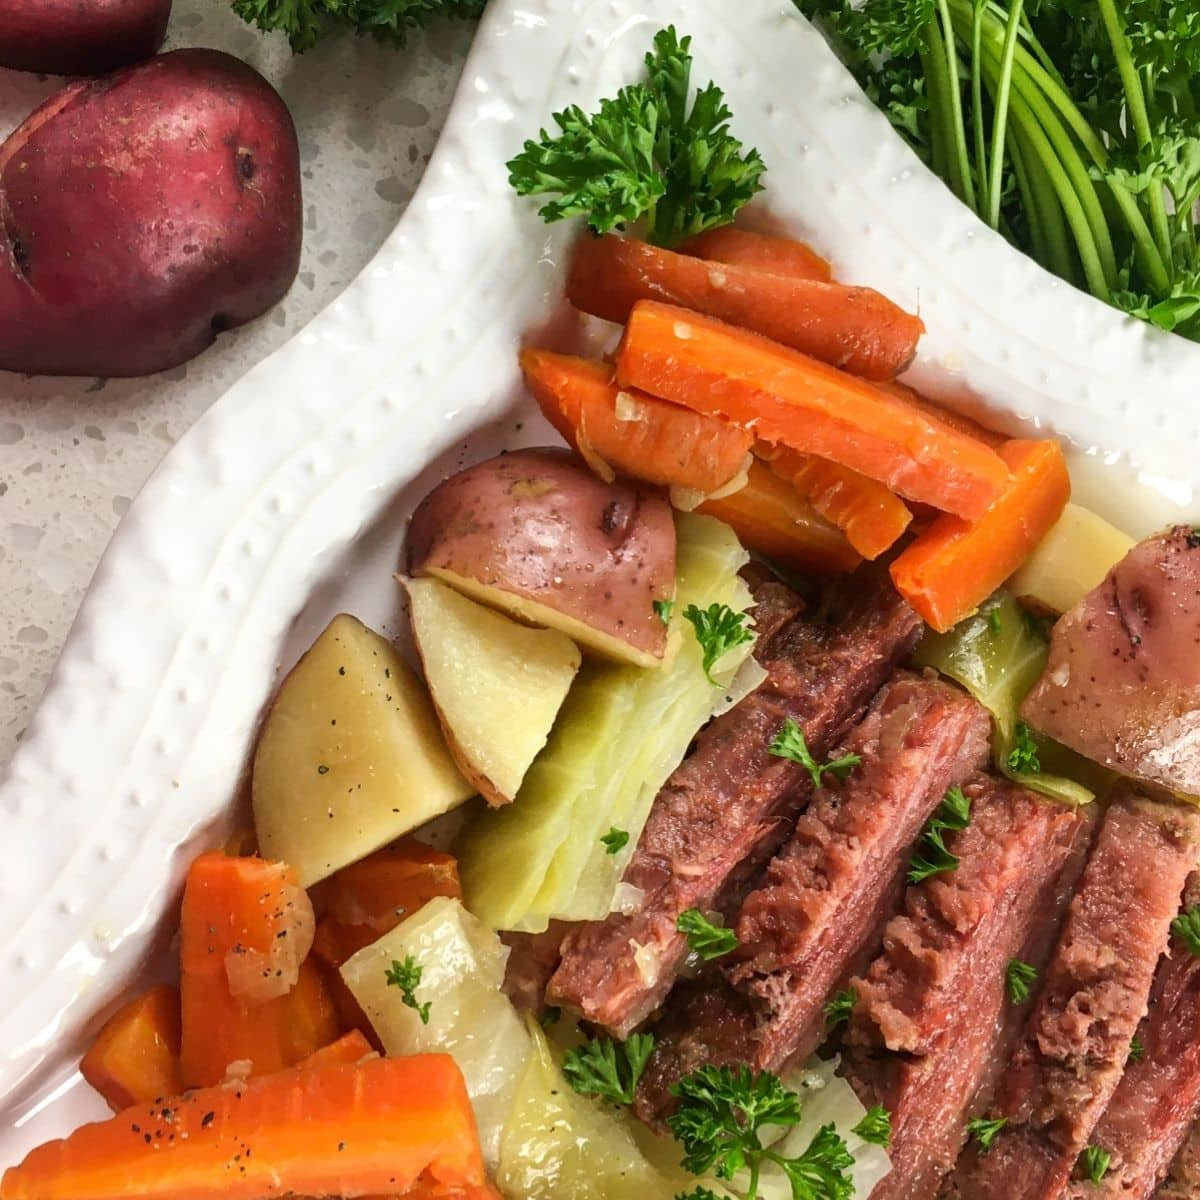 IP Corned Beef and Cabbage